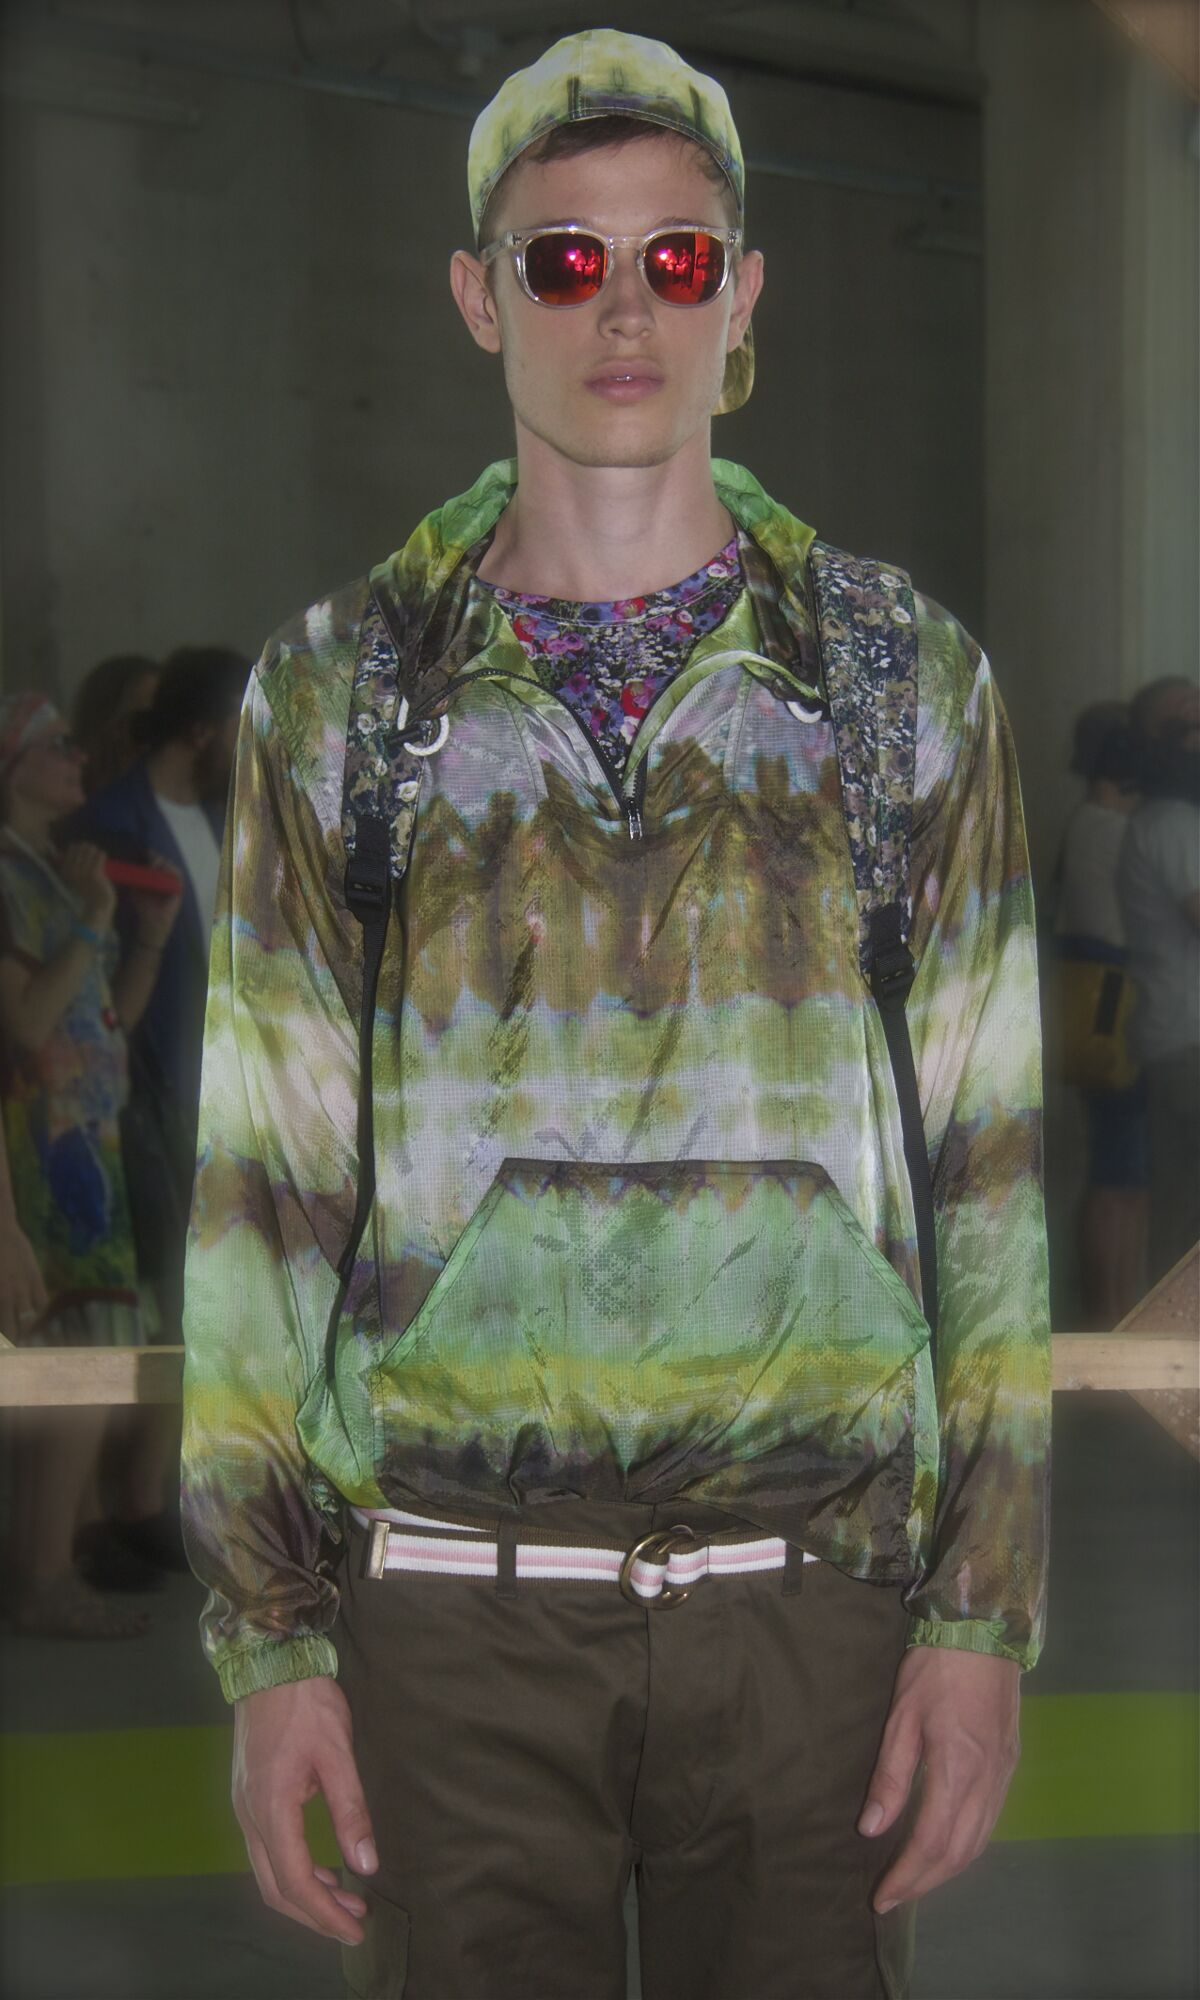 Msgm Spring Summer 2014 Men's Collection Pitti Immagine Uomo